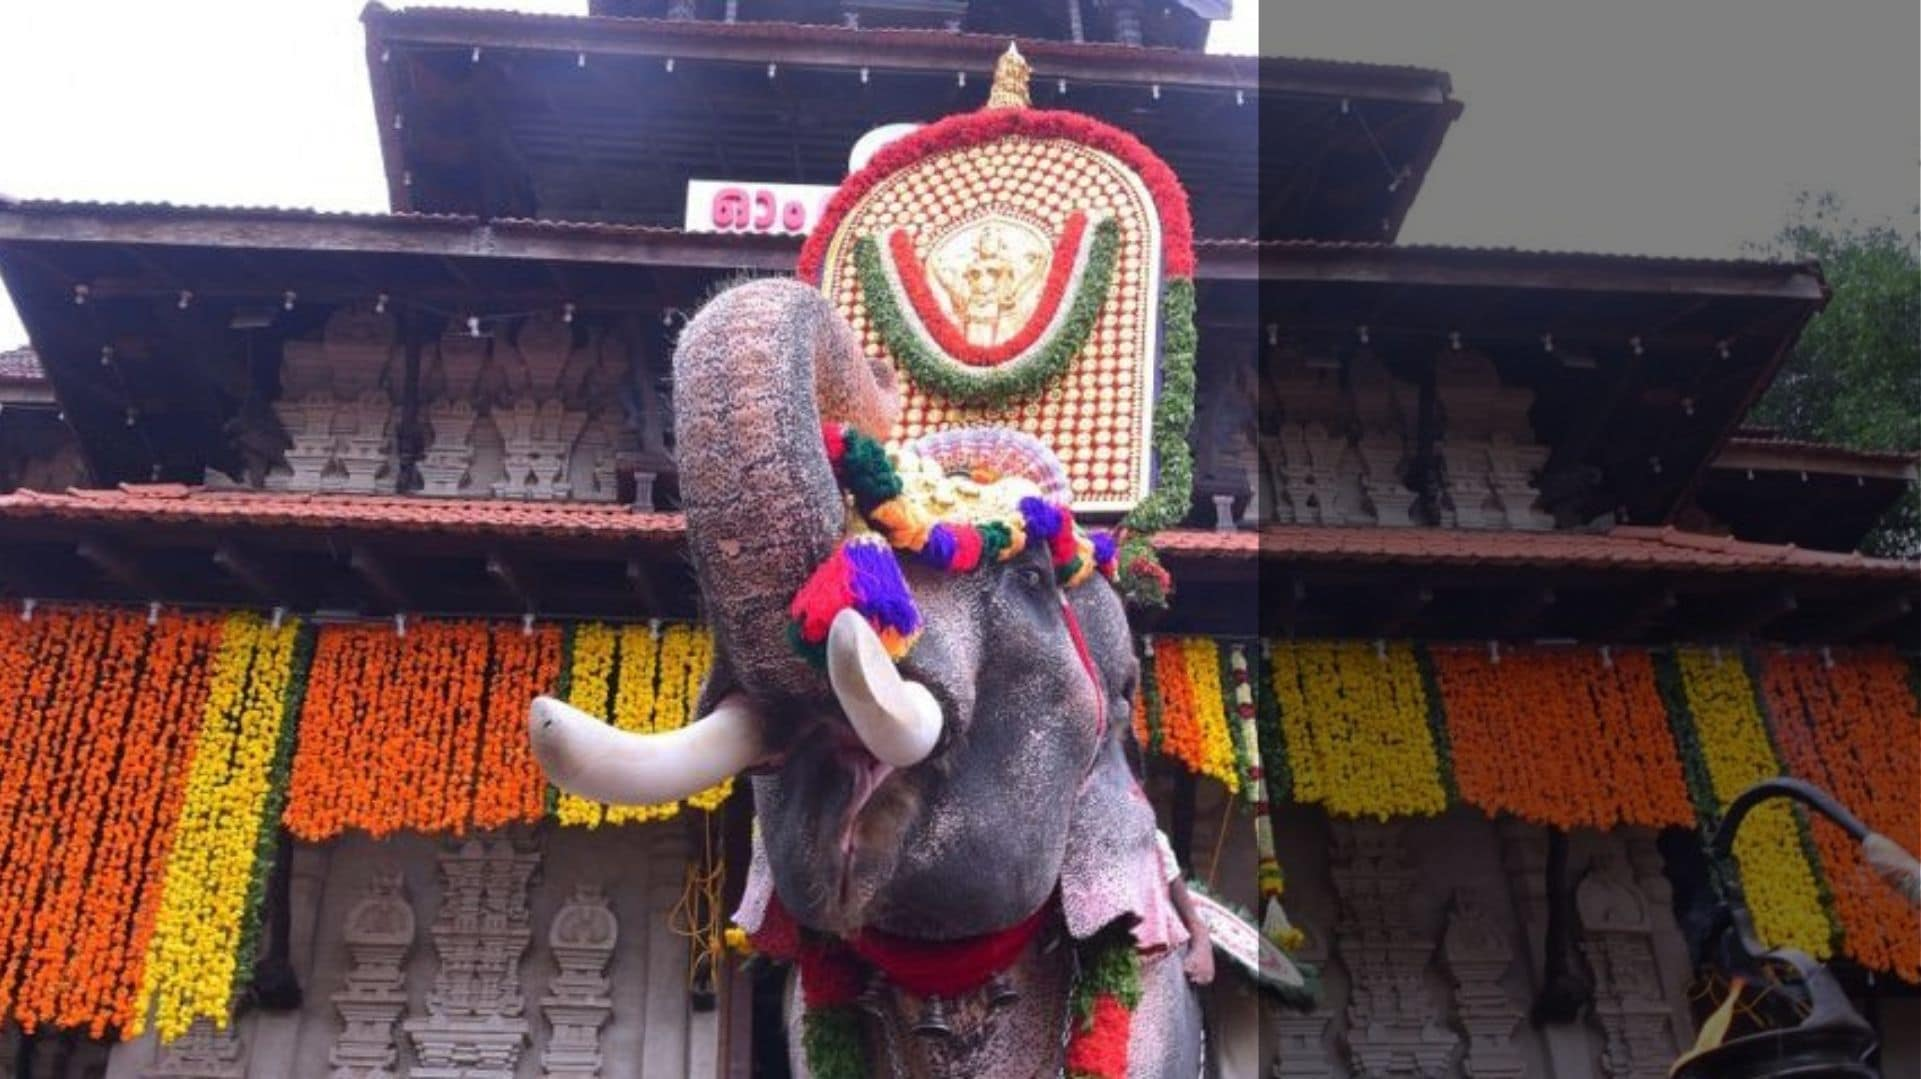 To parade or not: An elephantine problem at Thrissur Pooram